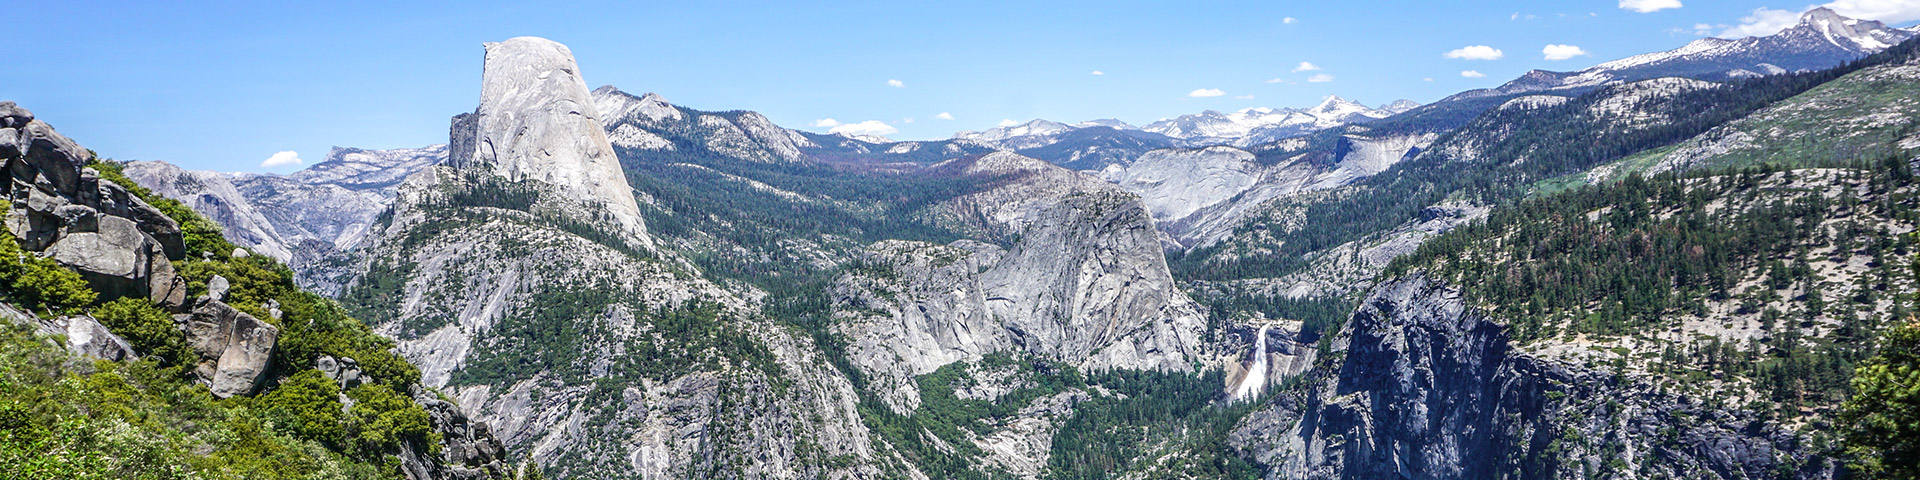 Scenic views from the Panorama Trail hike in Yosemite National Park